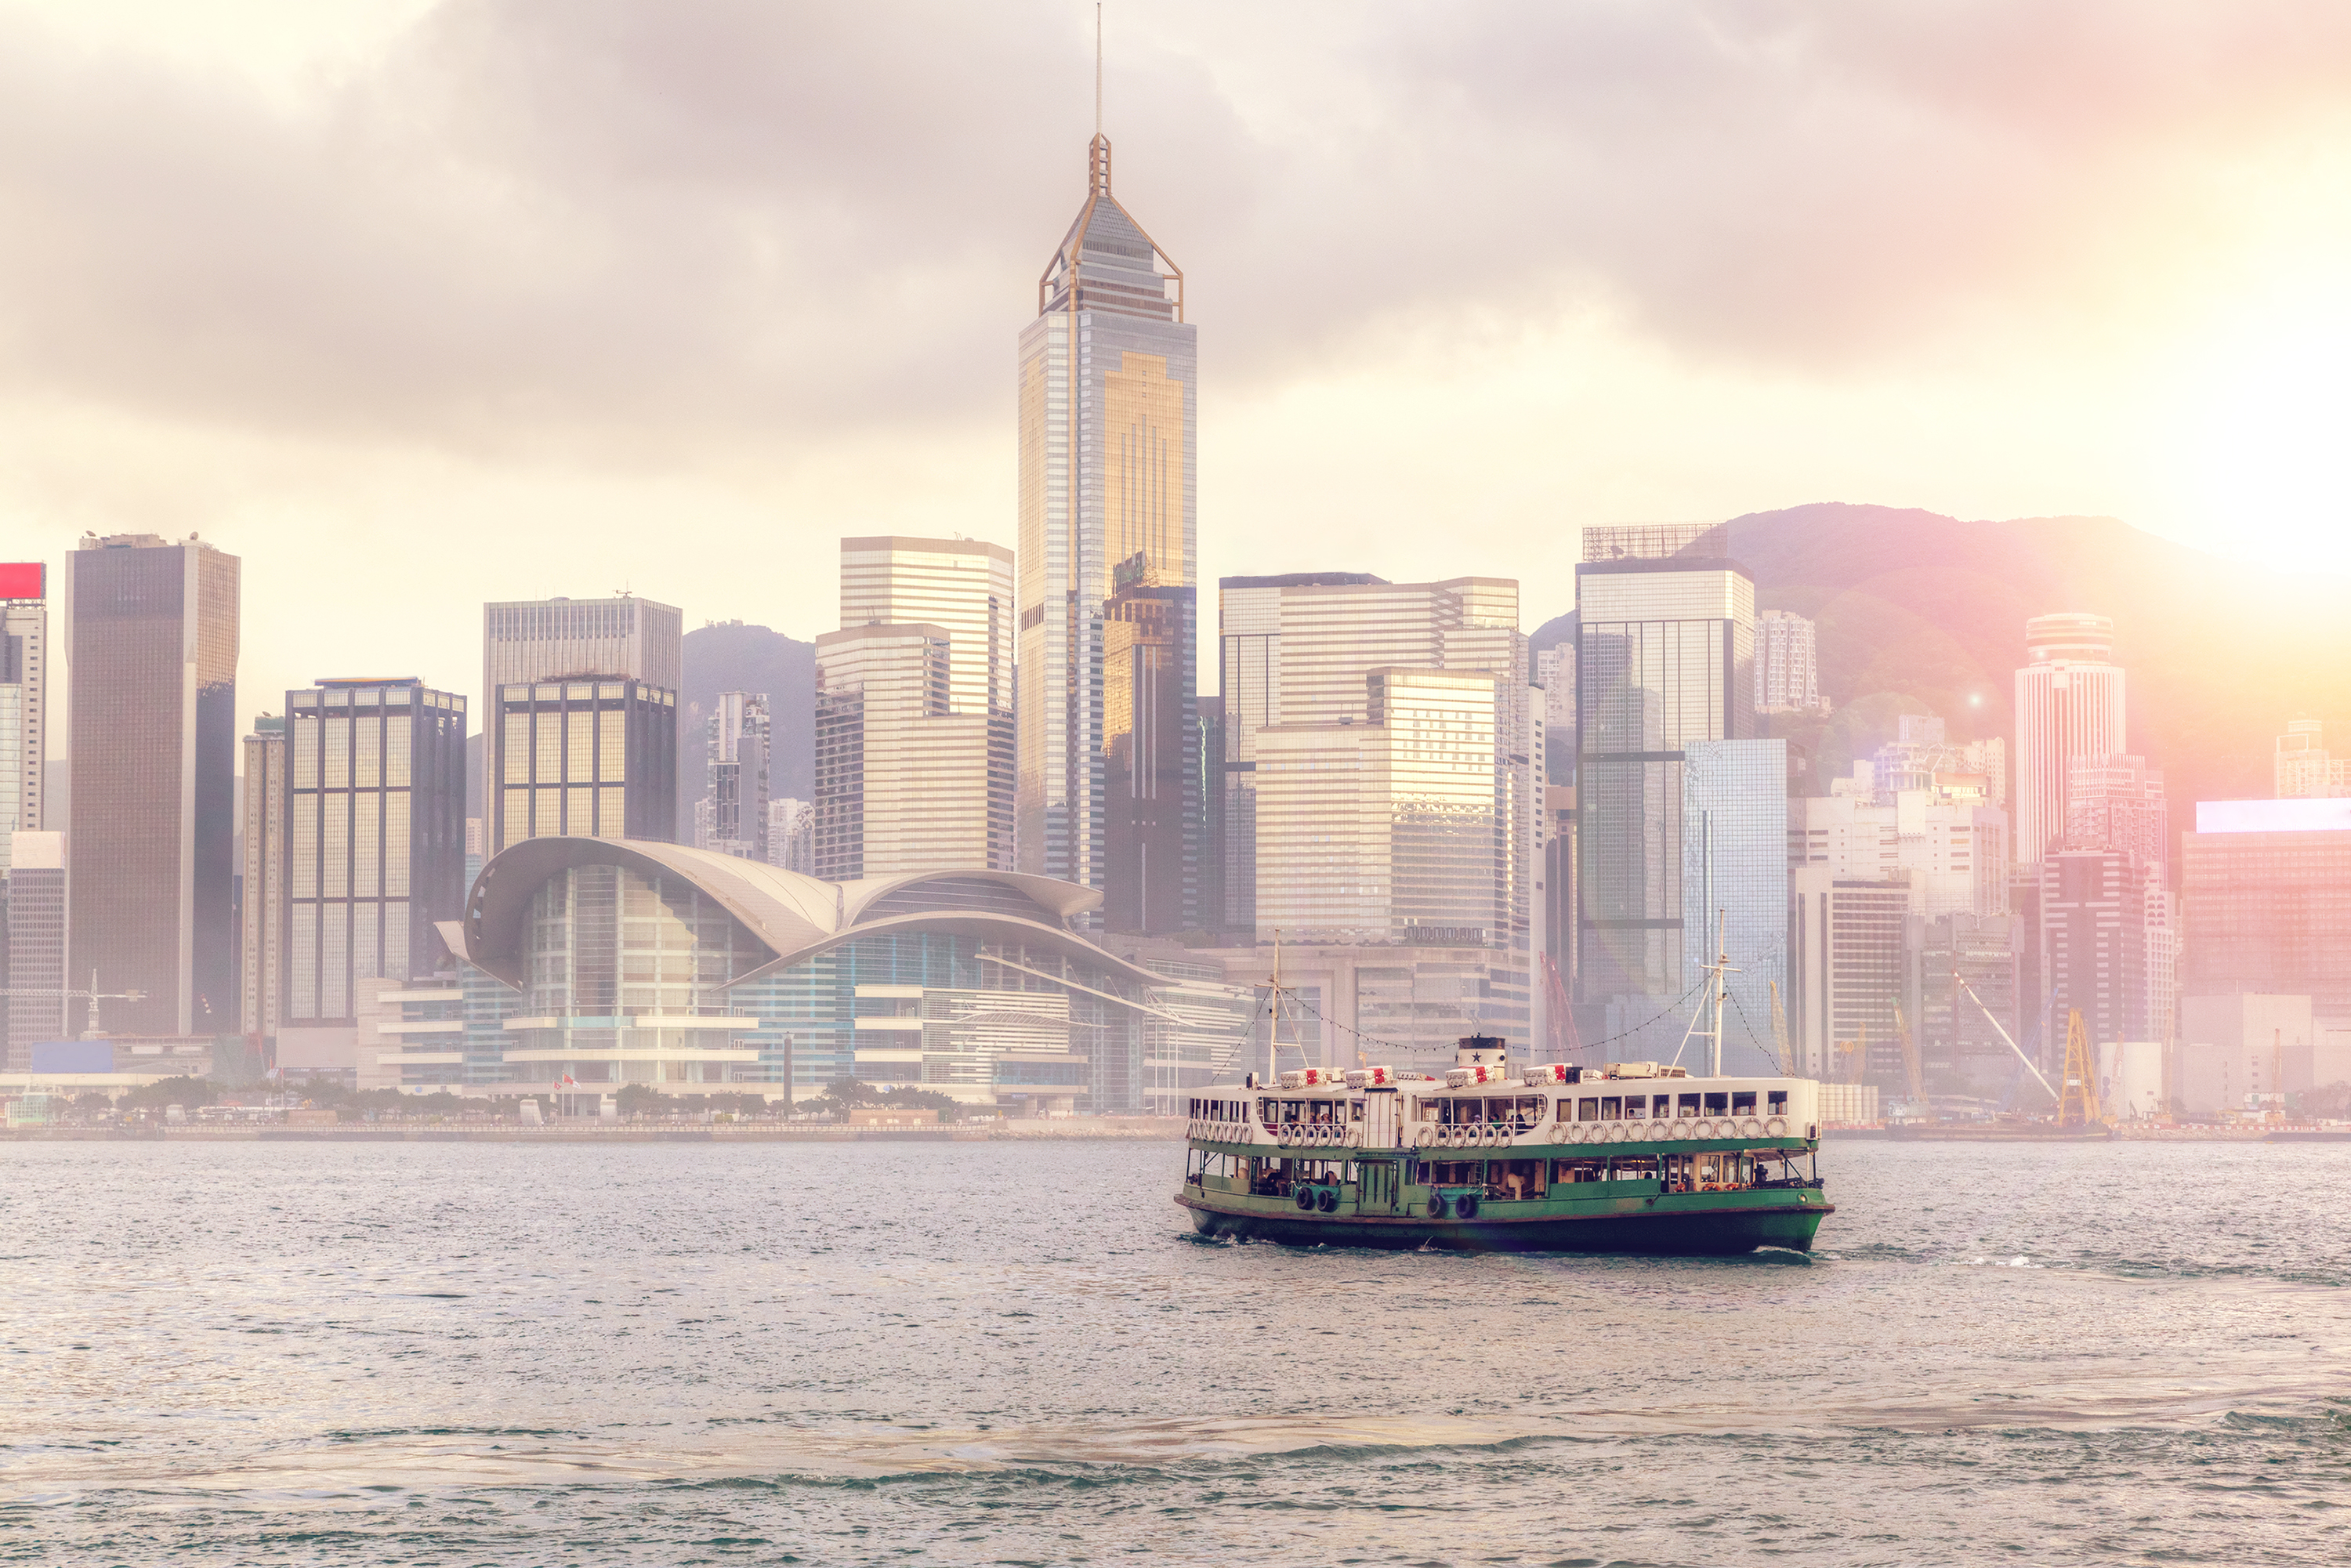 How to Use the Hong Kong Pass for Sightseeing